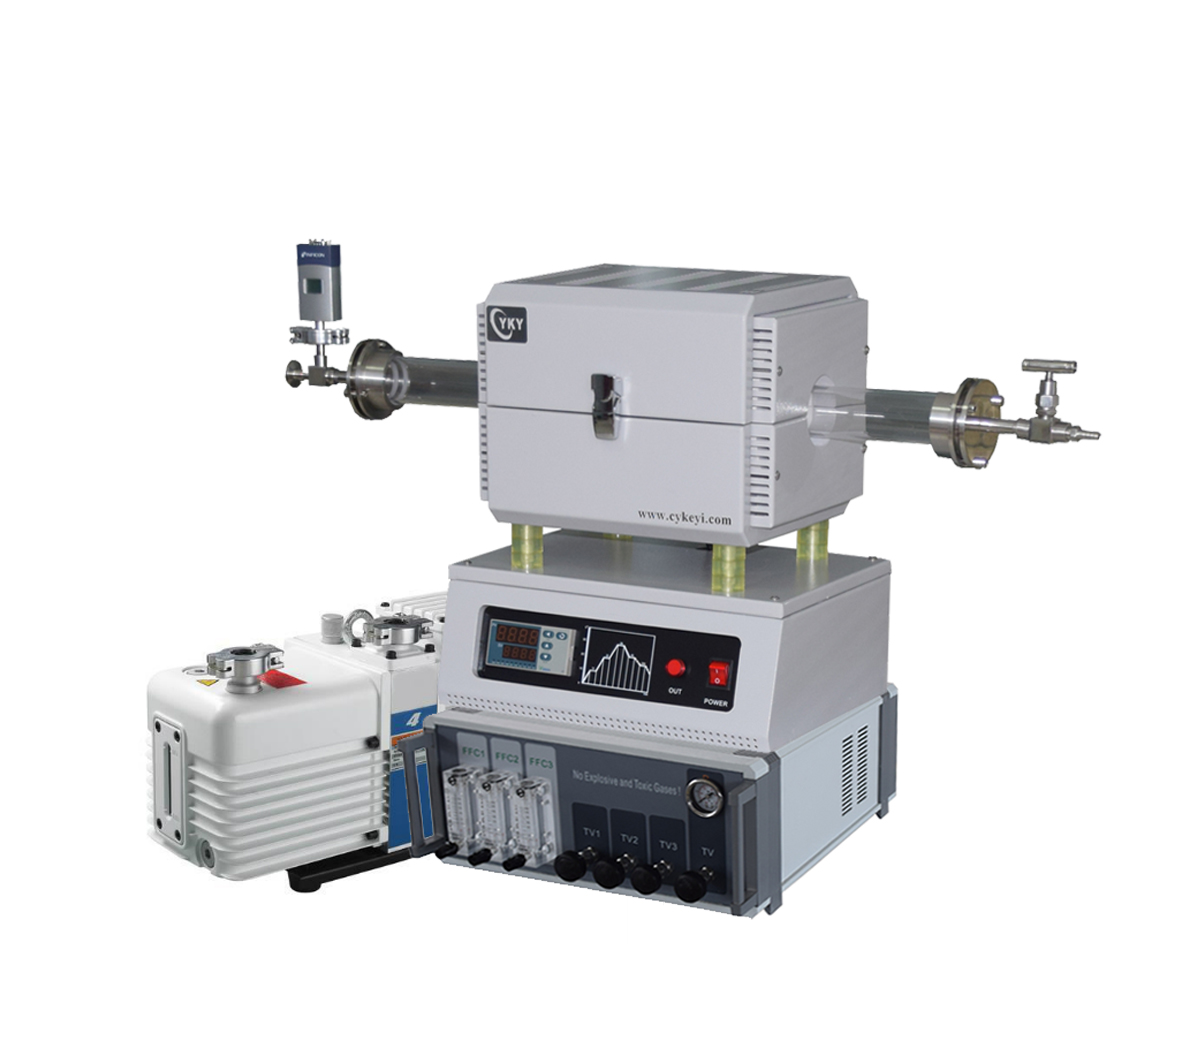 Compact CVD system with 1200°C tube furnace 3 gas way float flow controller-CY-O1200-50IC-3F